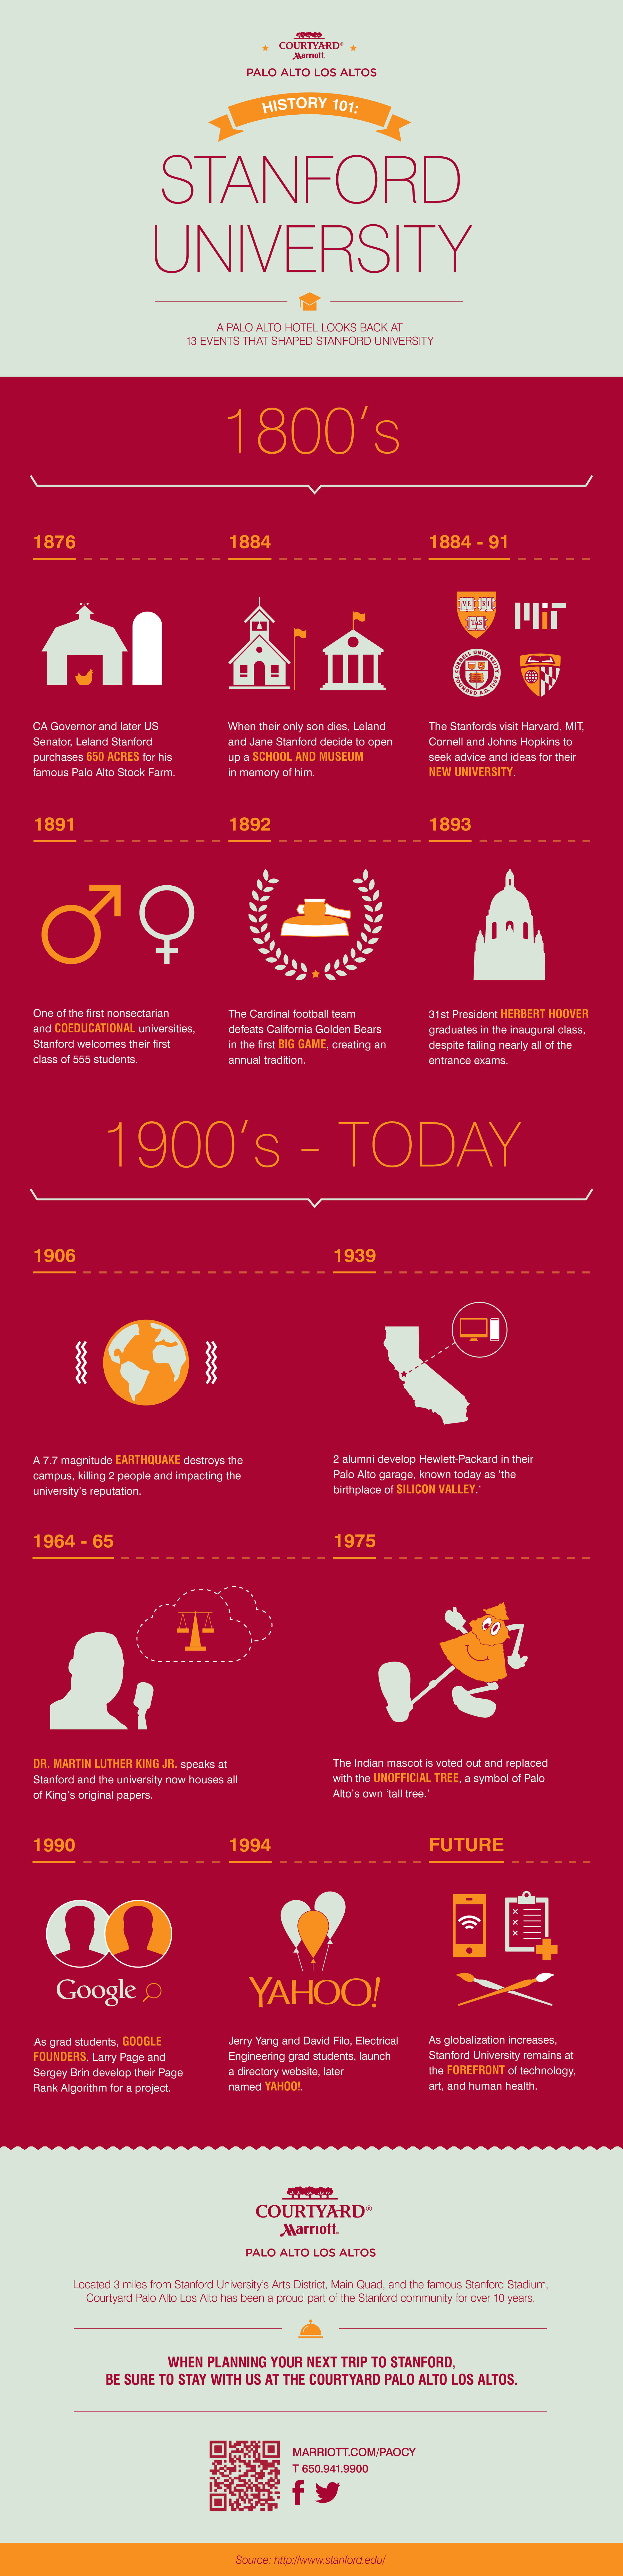 history-101-stanford-university-infographic